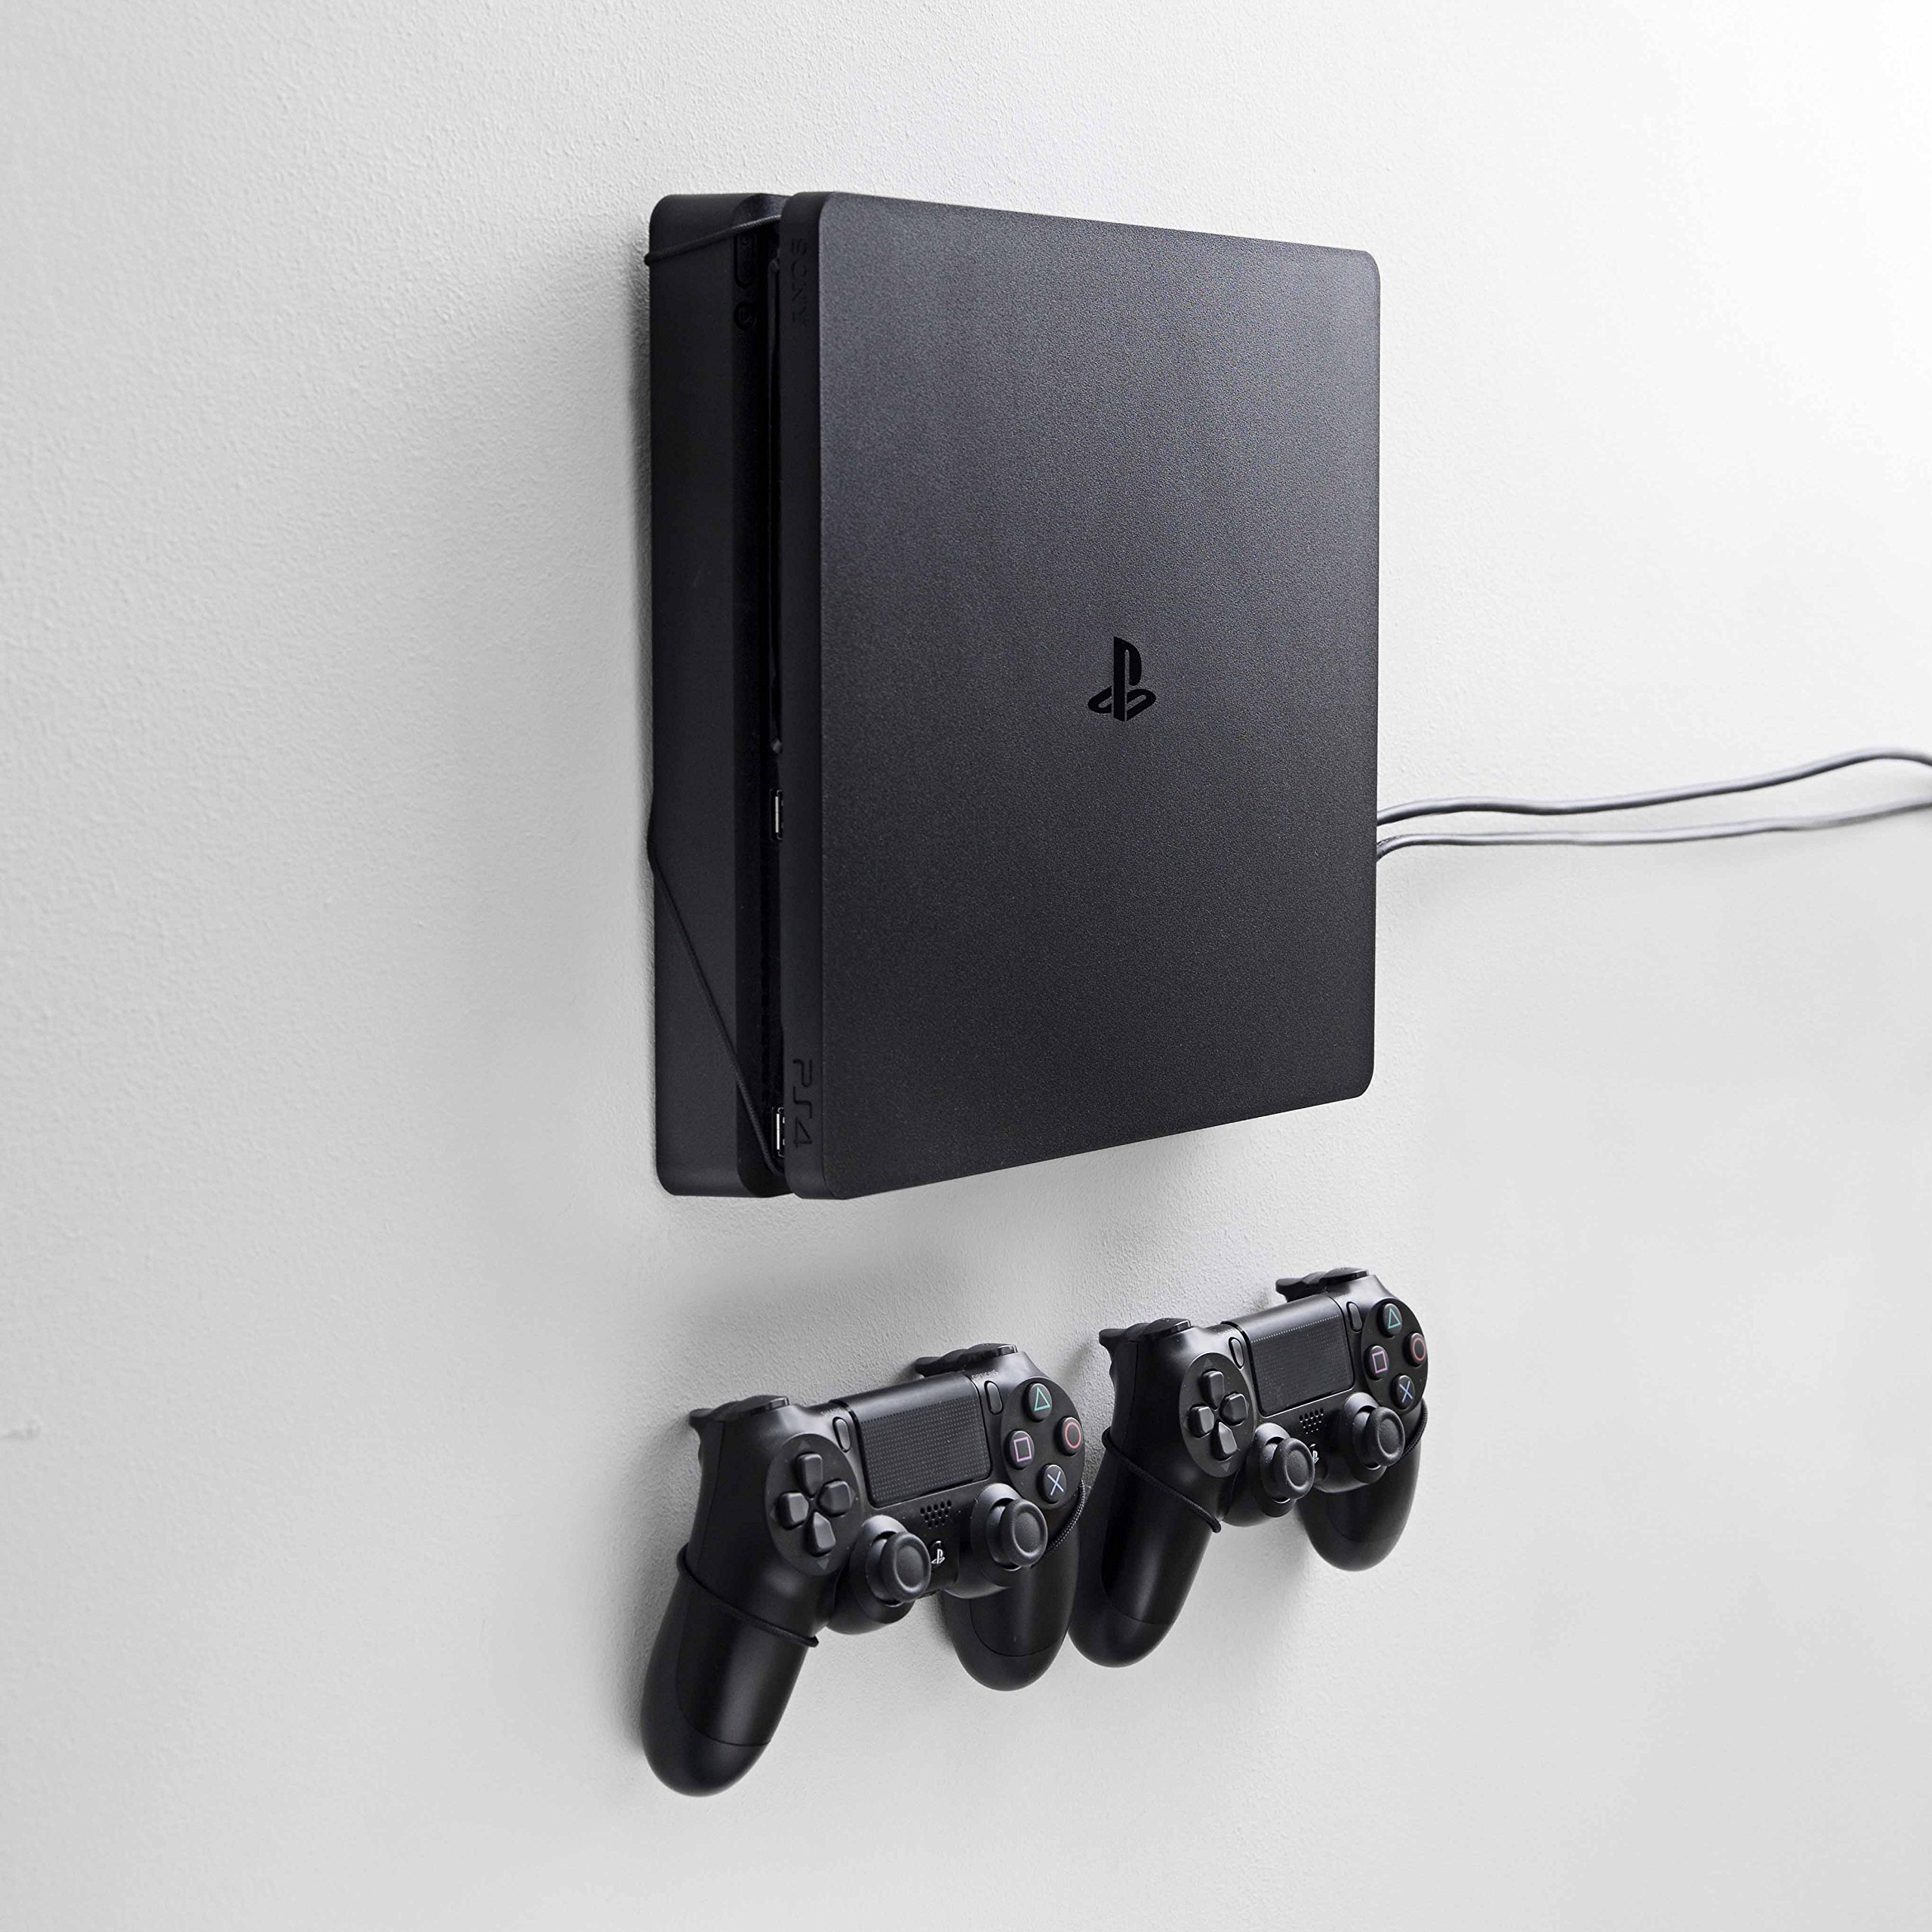 Wall mount for PlayStation 4 Slim (PS4 Slim) by FLOATING GRIP® - Bundle package for console and 2x controllers - Color: Black - Patent pending and proprietary design. by FLOATING GRIP®